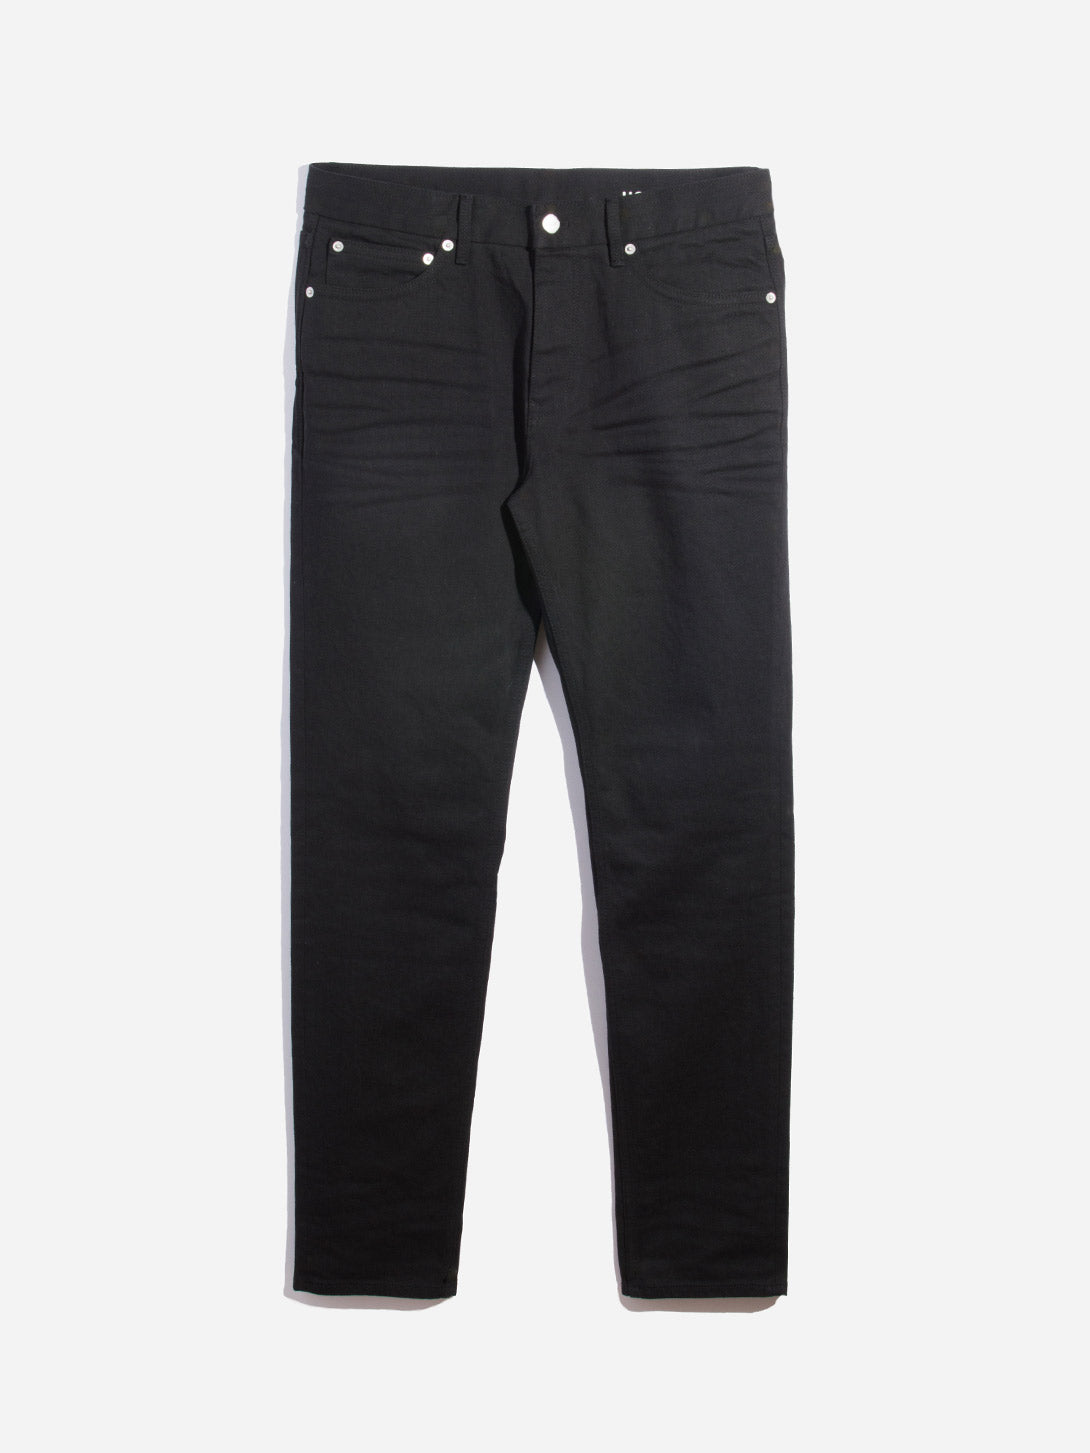 JET BLACK jeans for men denim houstons ons clothing